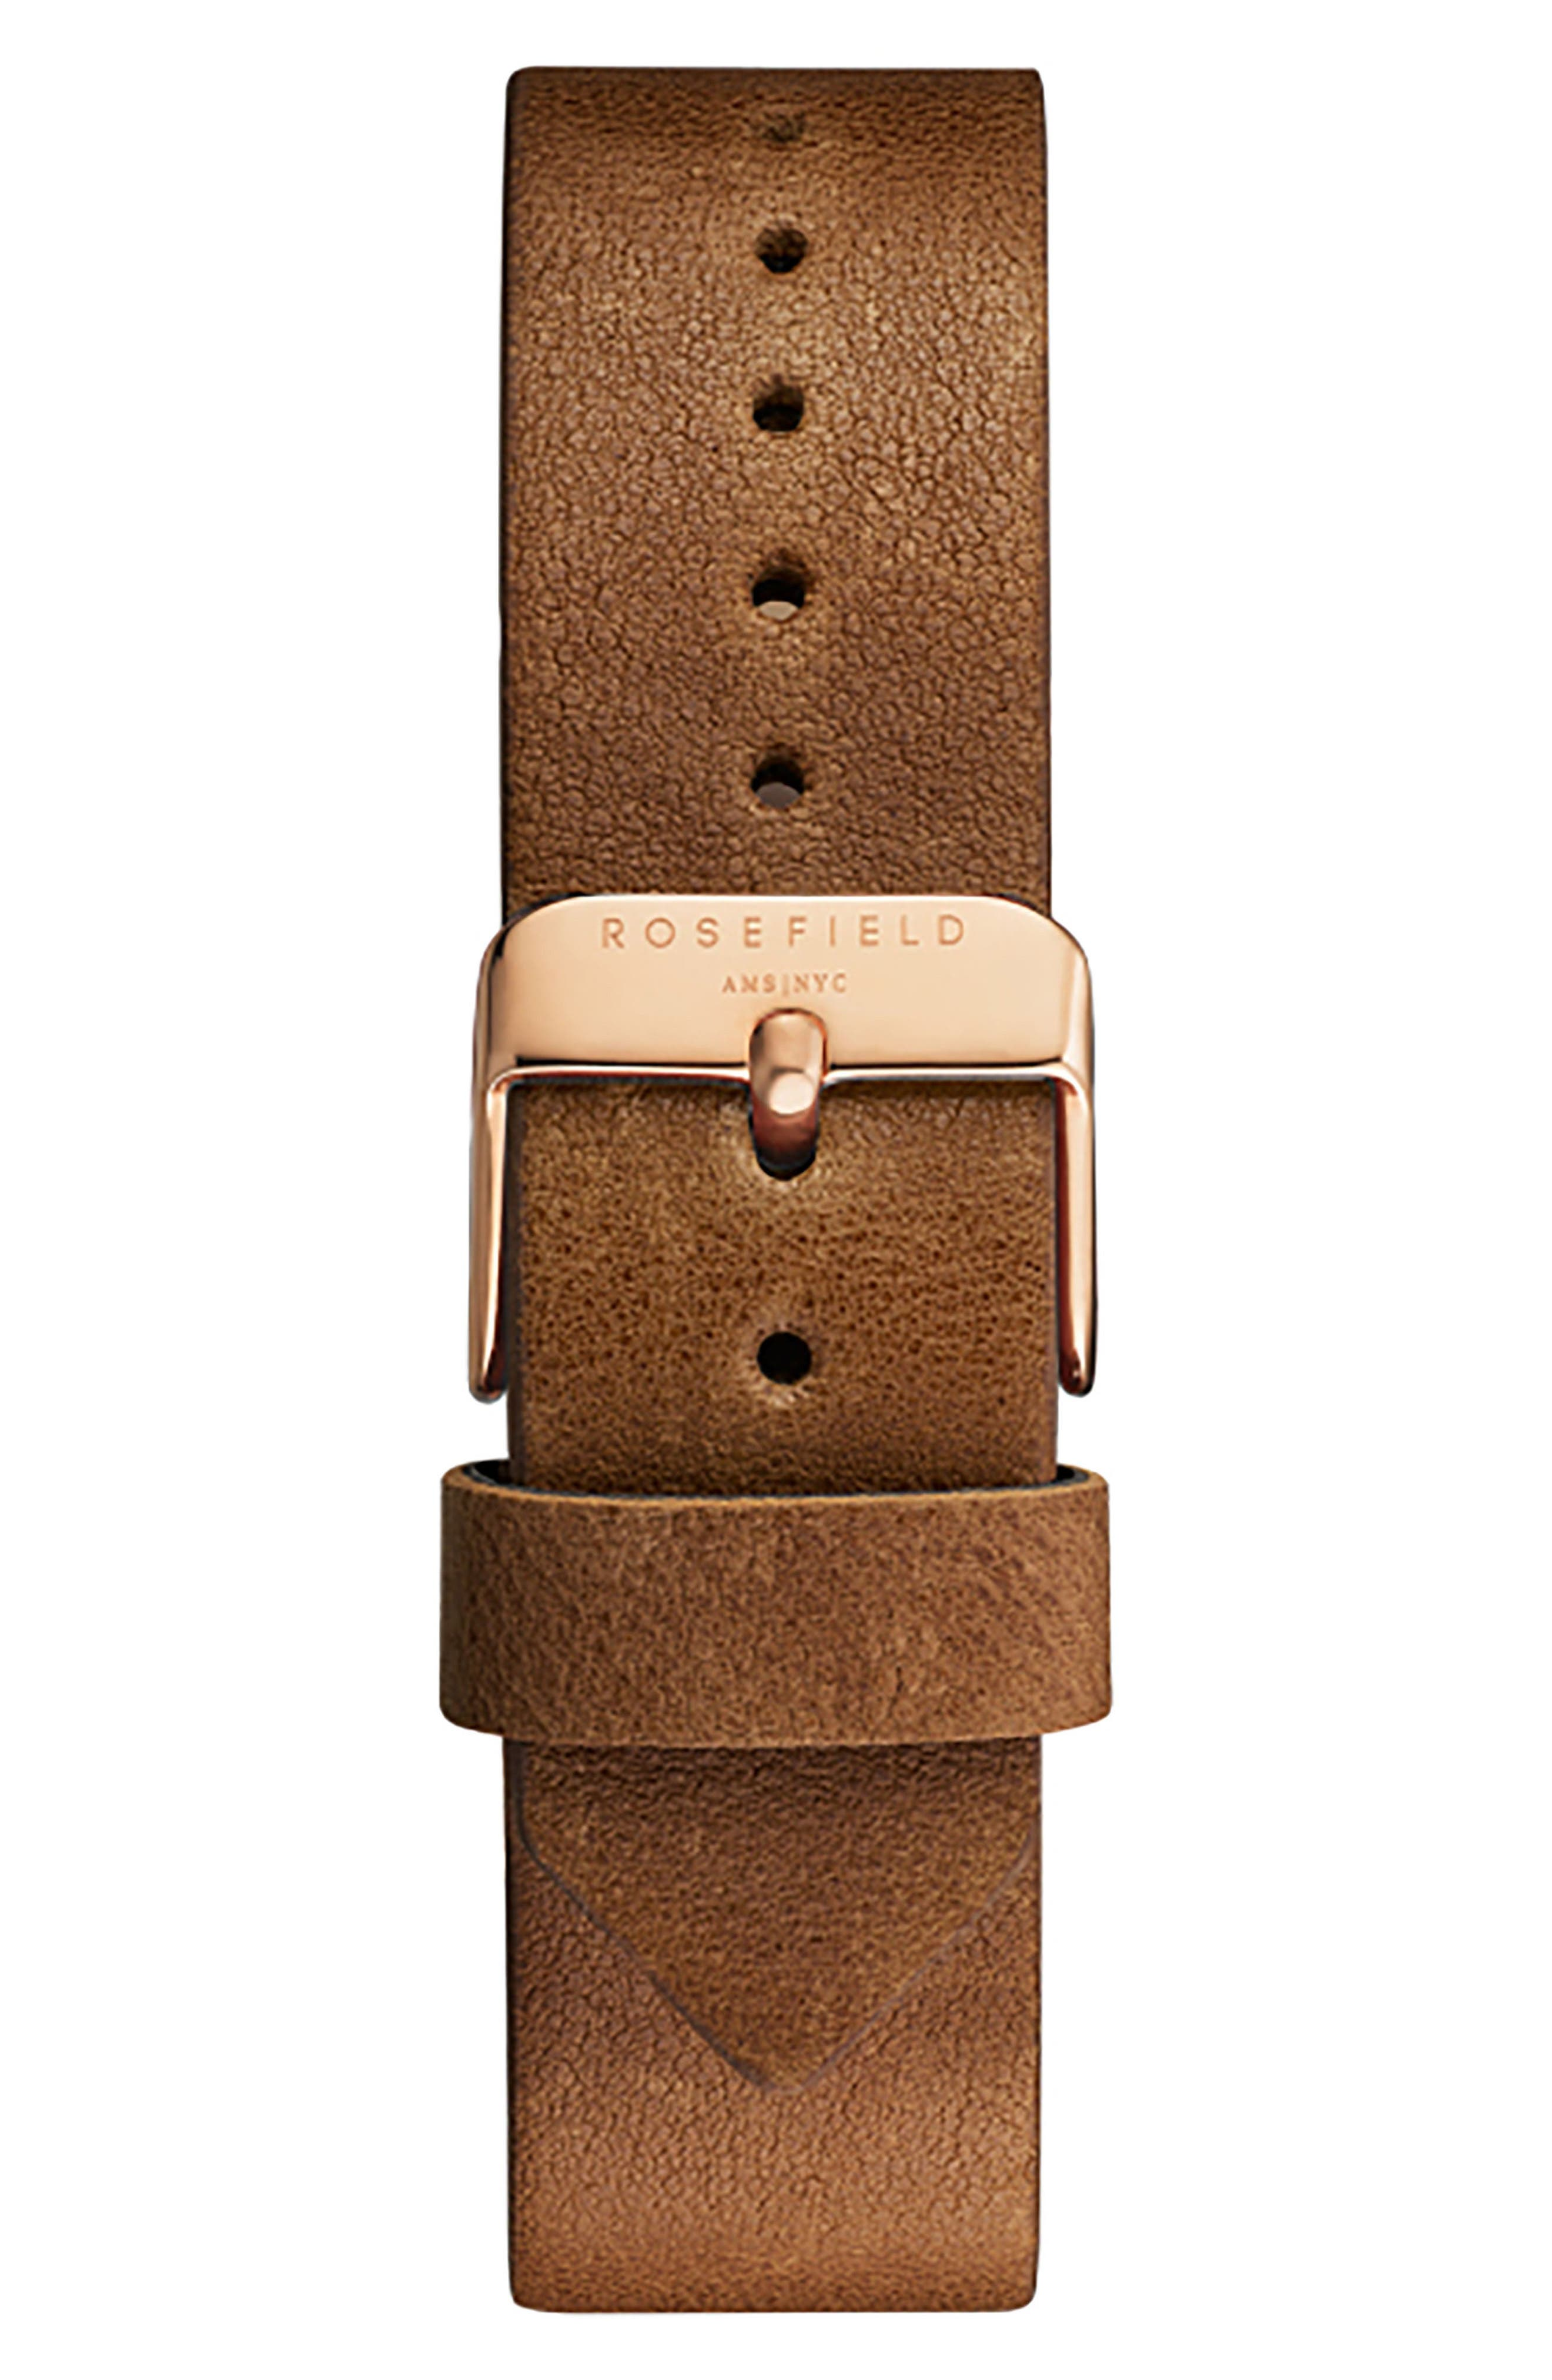 ROSEFIELD, Tribeca Leather Strap Watch, 33mm, Alternate thumbnail 2, color, BROWN/ WHITE/ ROSE GOLD